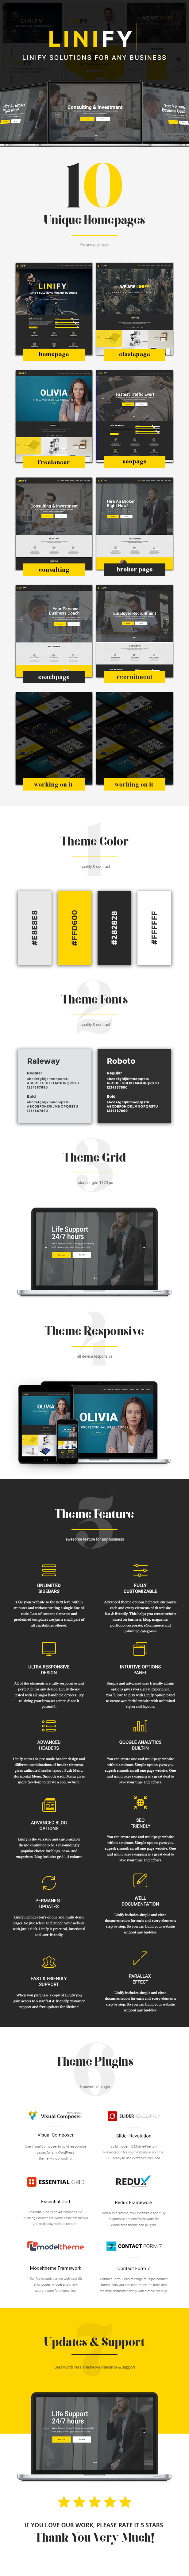 Linify - Multipurpose Corporate WordPress Theme - 2